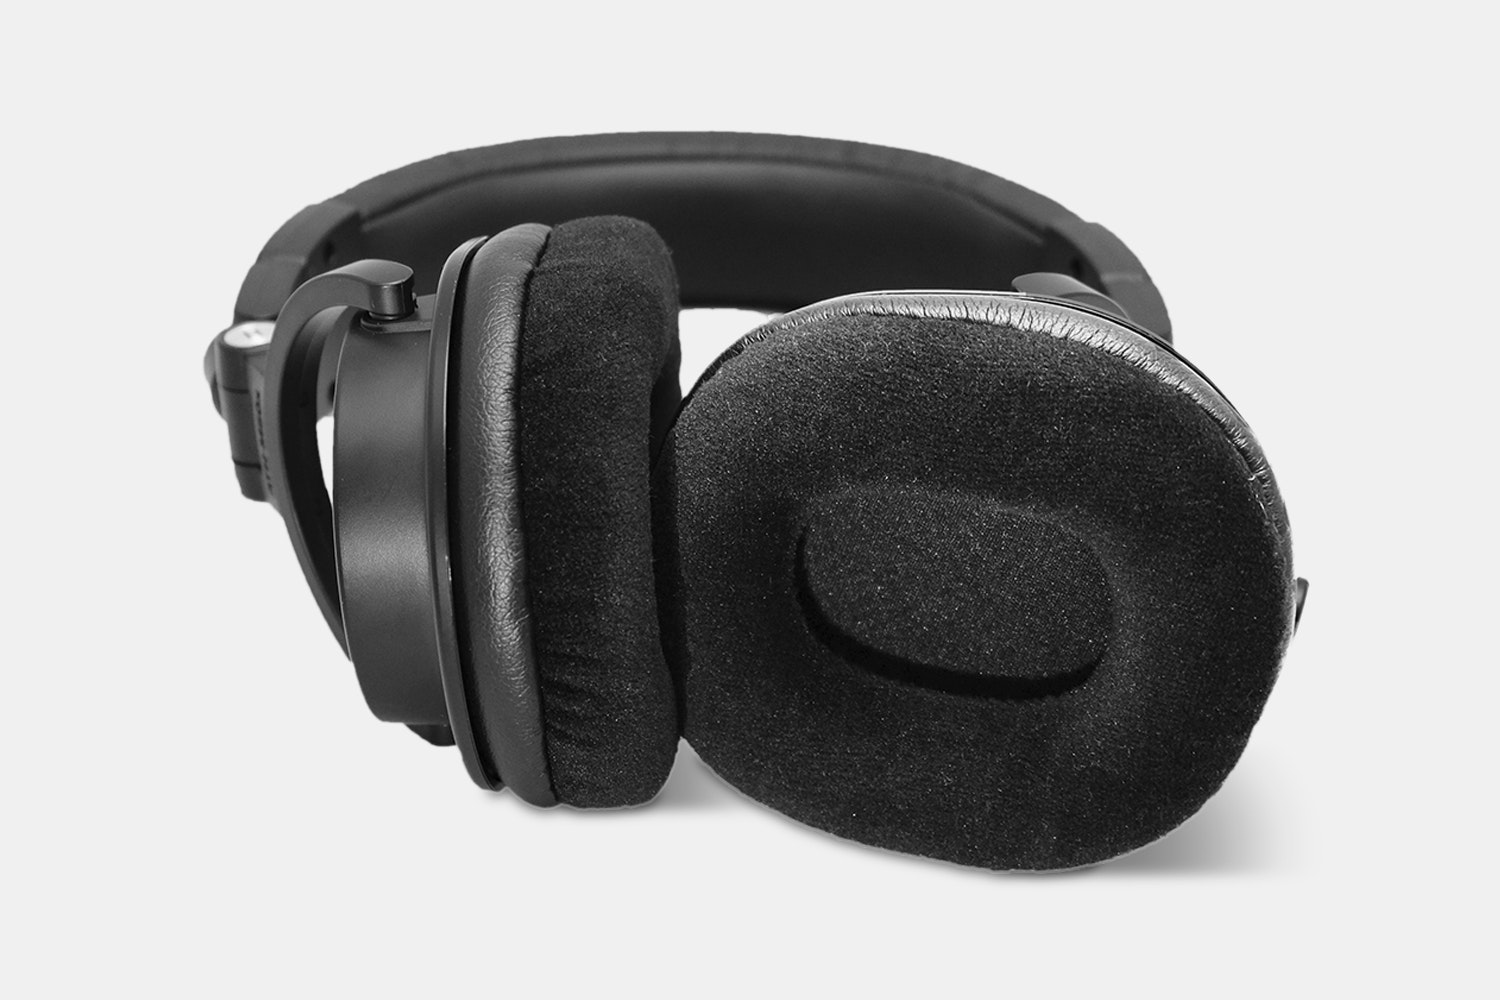 Dekoni Audio-Technica ATH-M50x Ear Pads